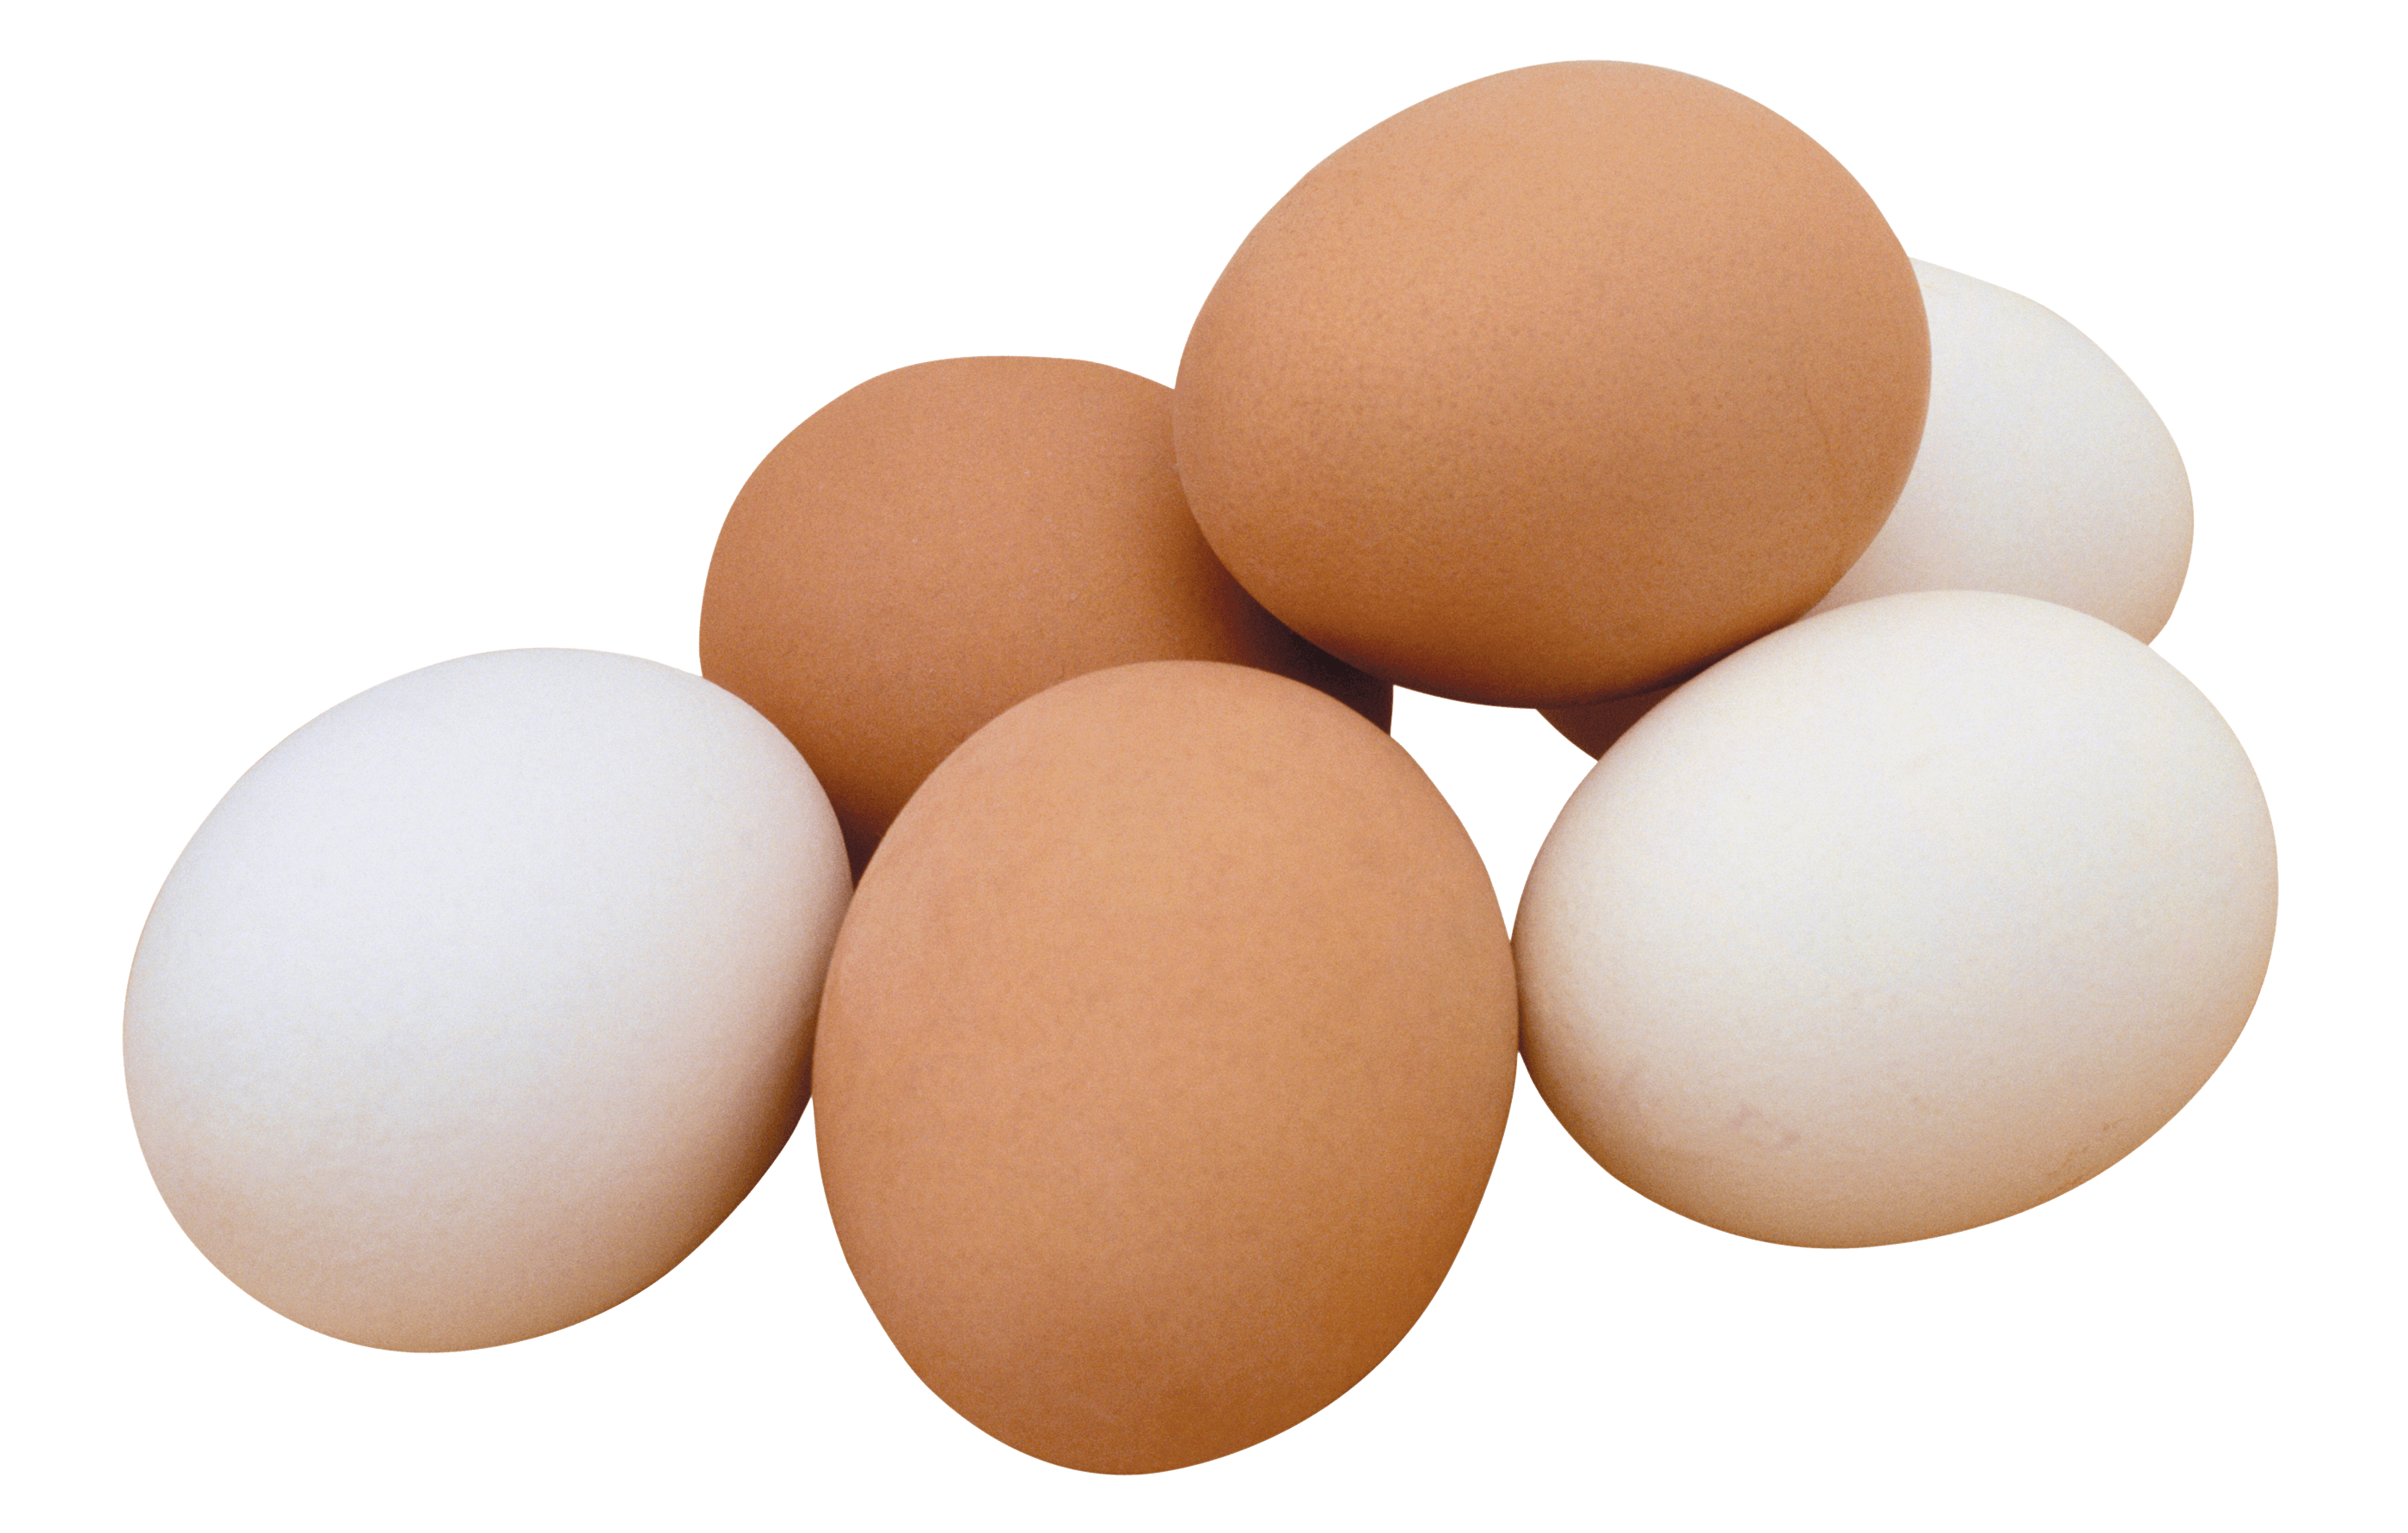 vector black and white download Basket png stickpng egg. Eggs transparent